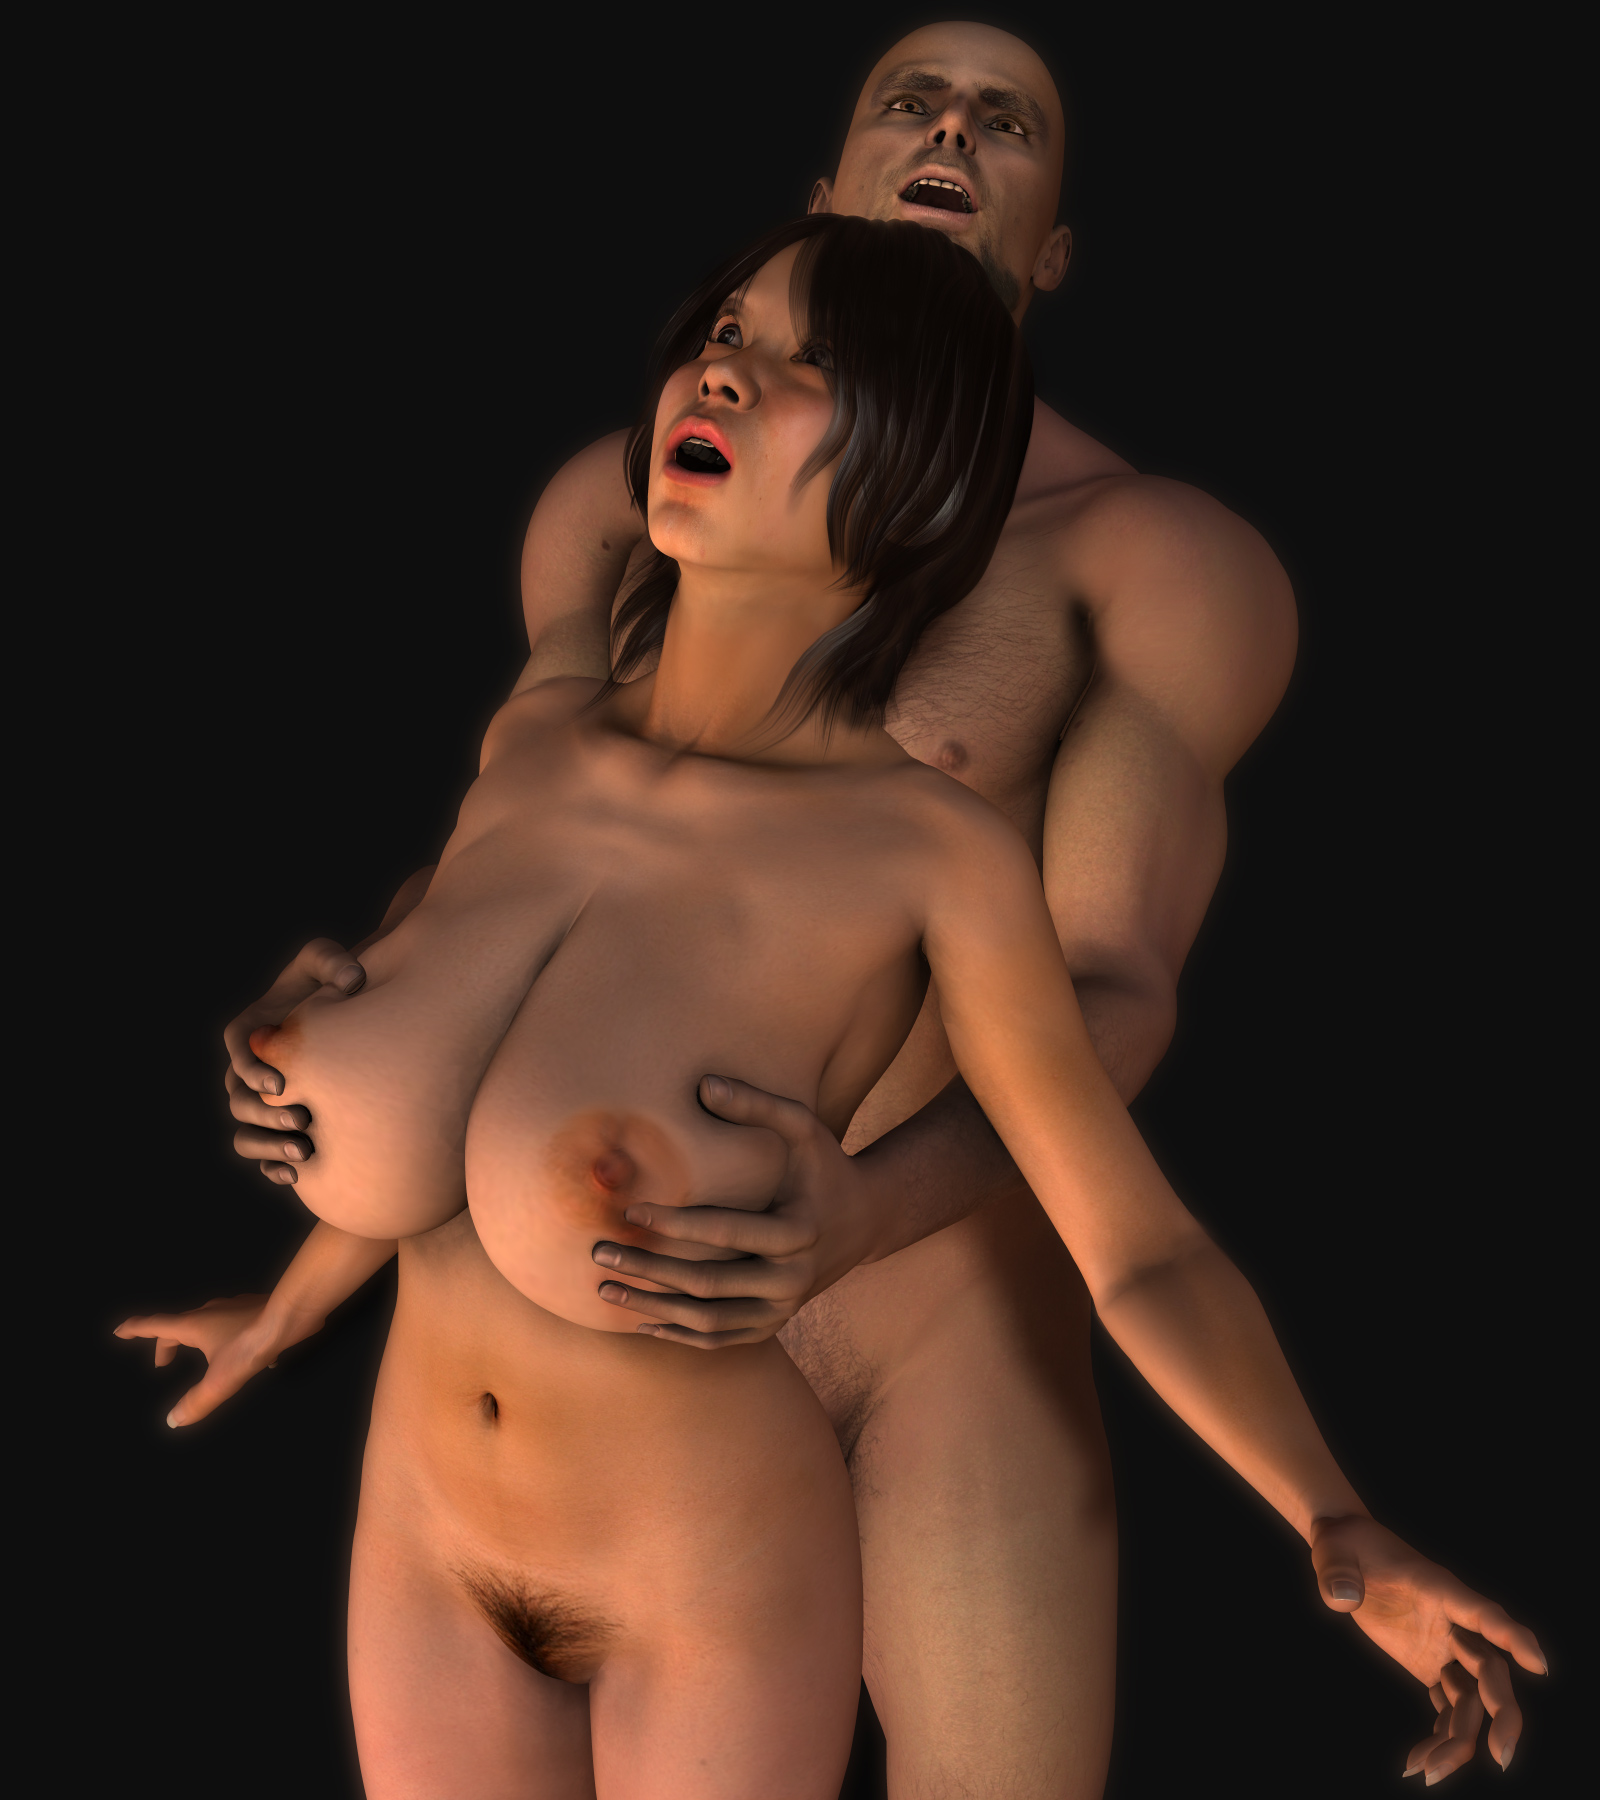 3d nude abuse art hentai films